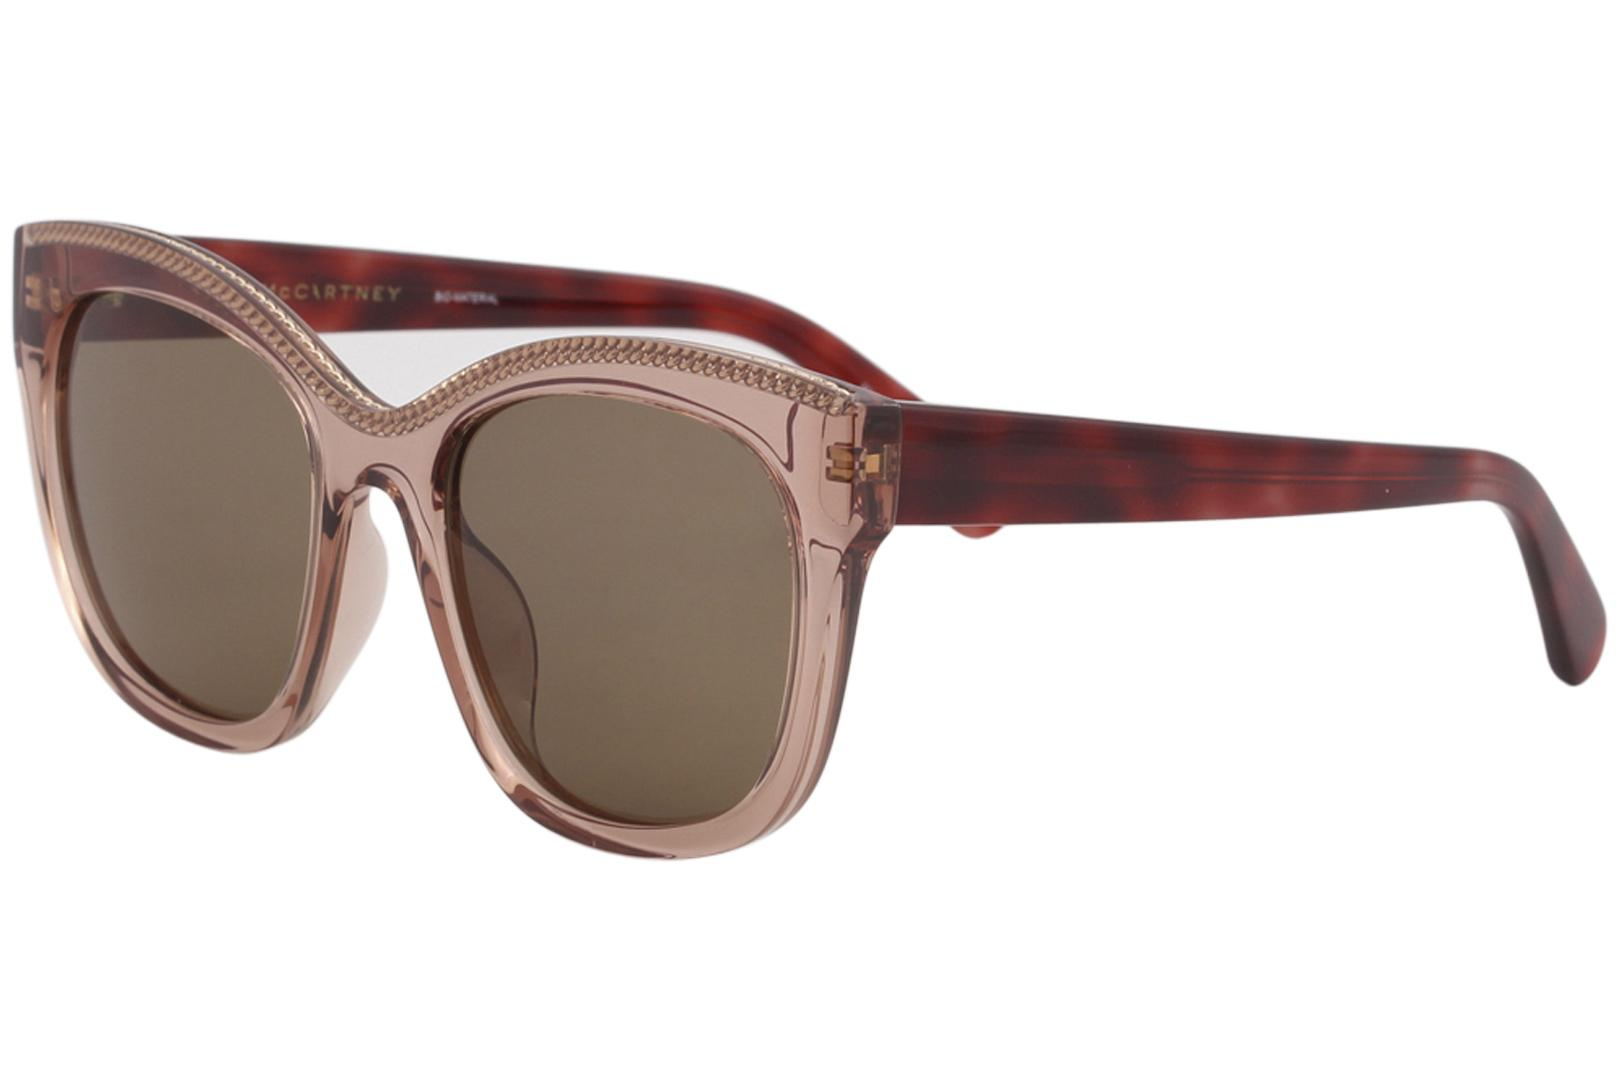 Image of Stella McCartney Falabella SC0130S SC/0130/S 003 Havana Square Sunglasses 54mm - Havana Pink/Brown Gradient   003 - Lens 54 Bridge 20 Temple 145mm